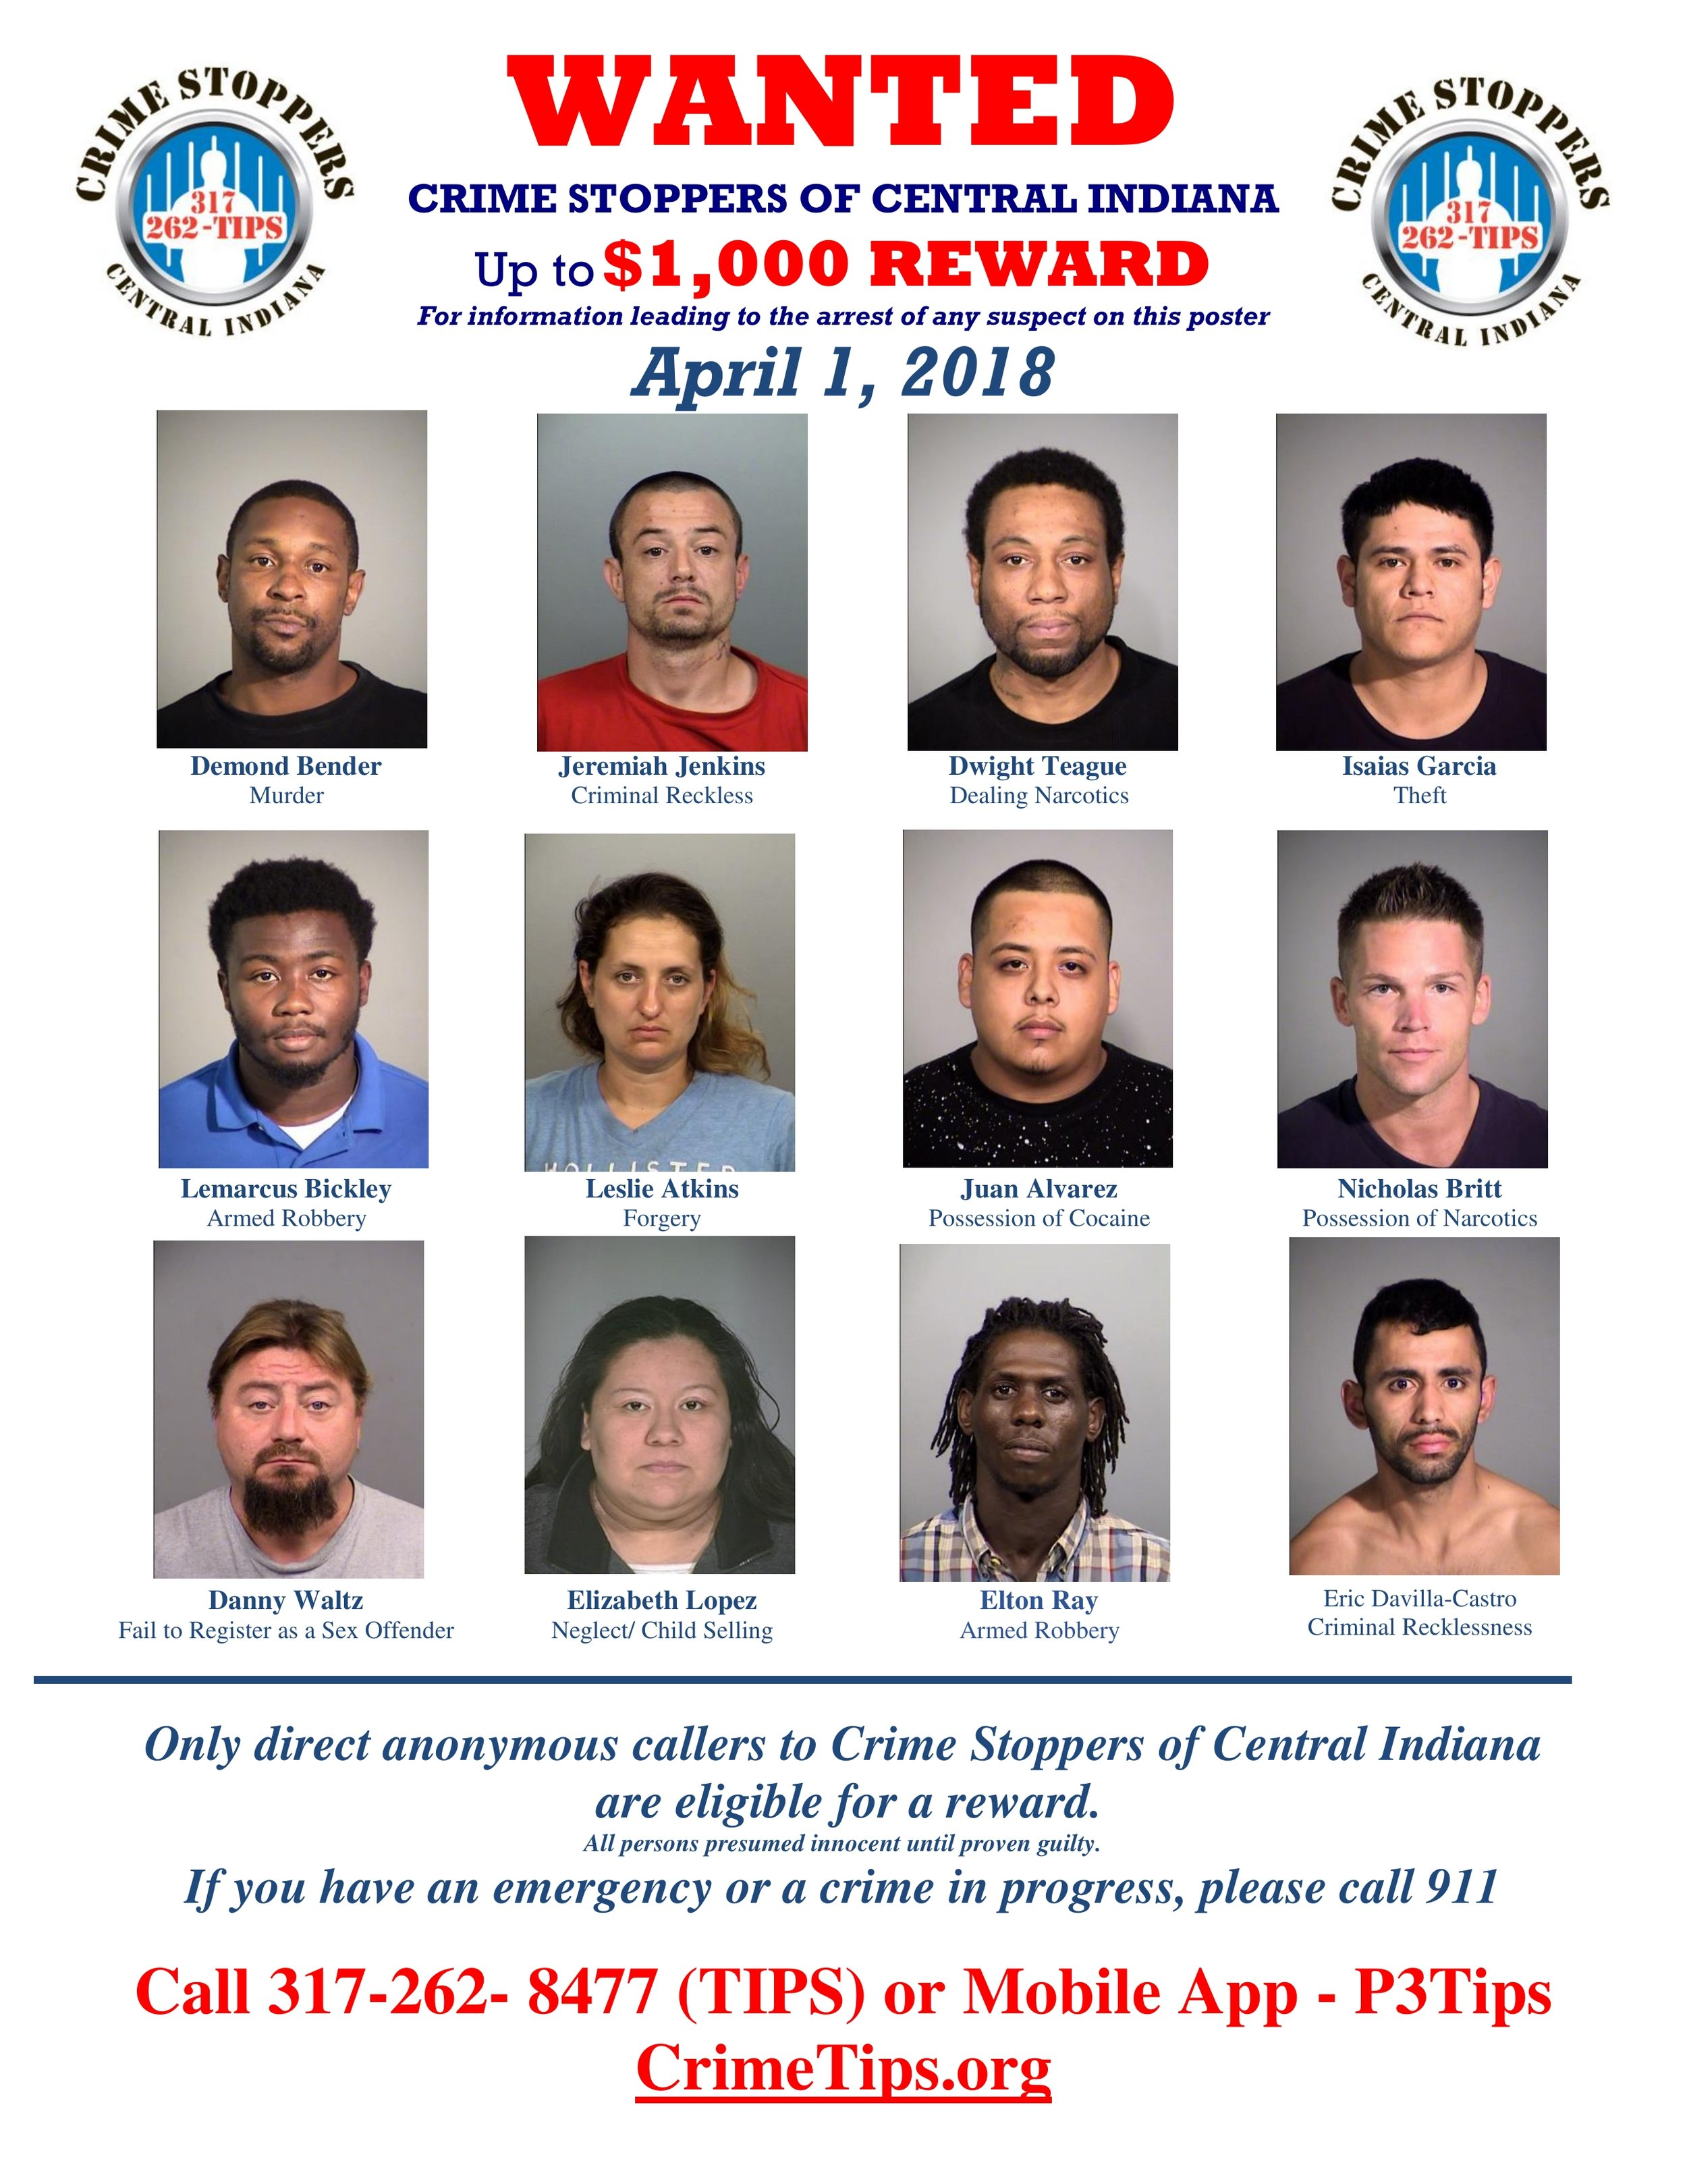 2018-04 Wanted Poster.jpg